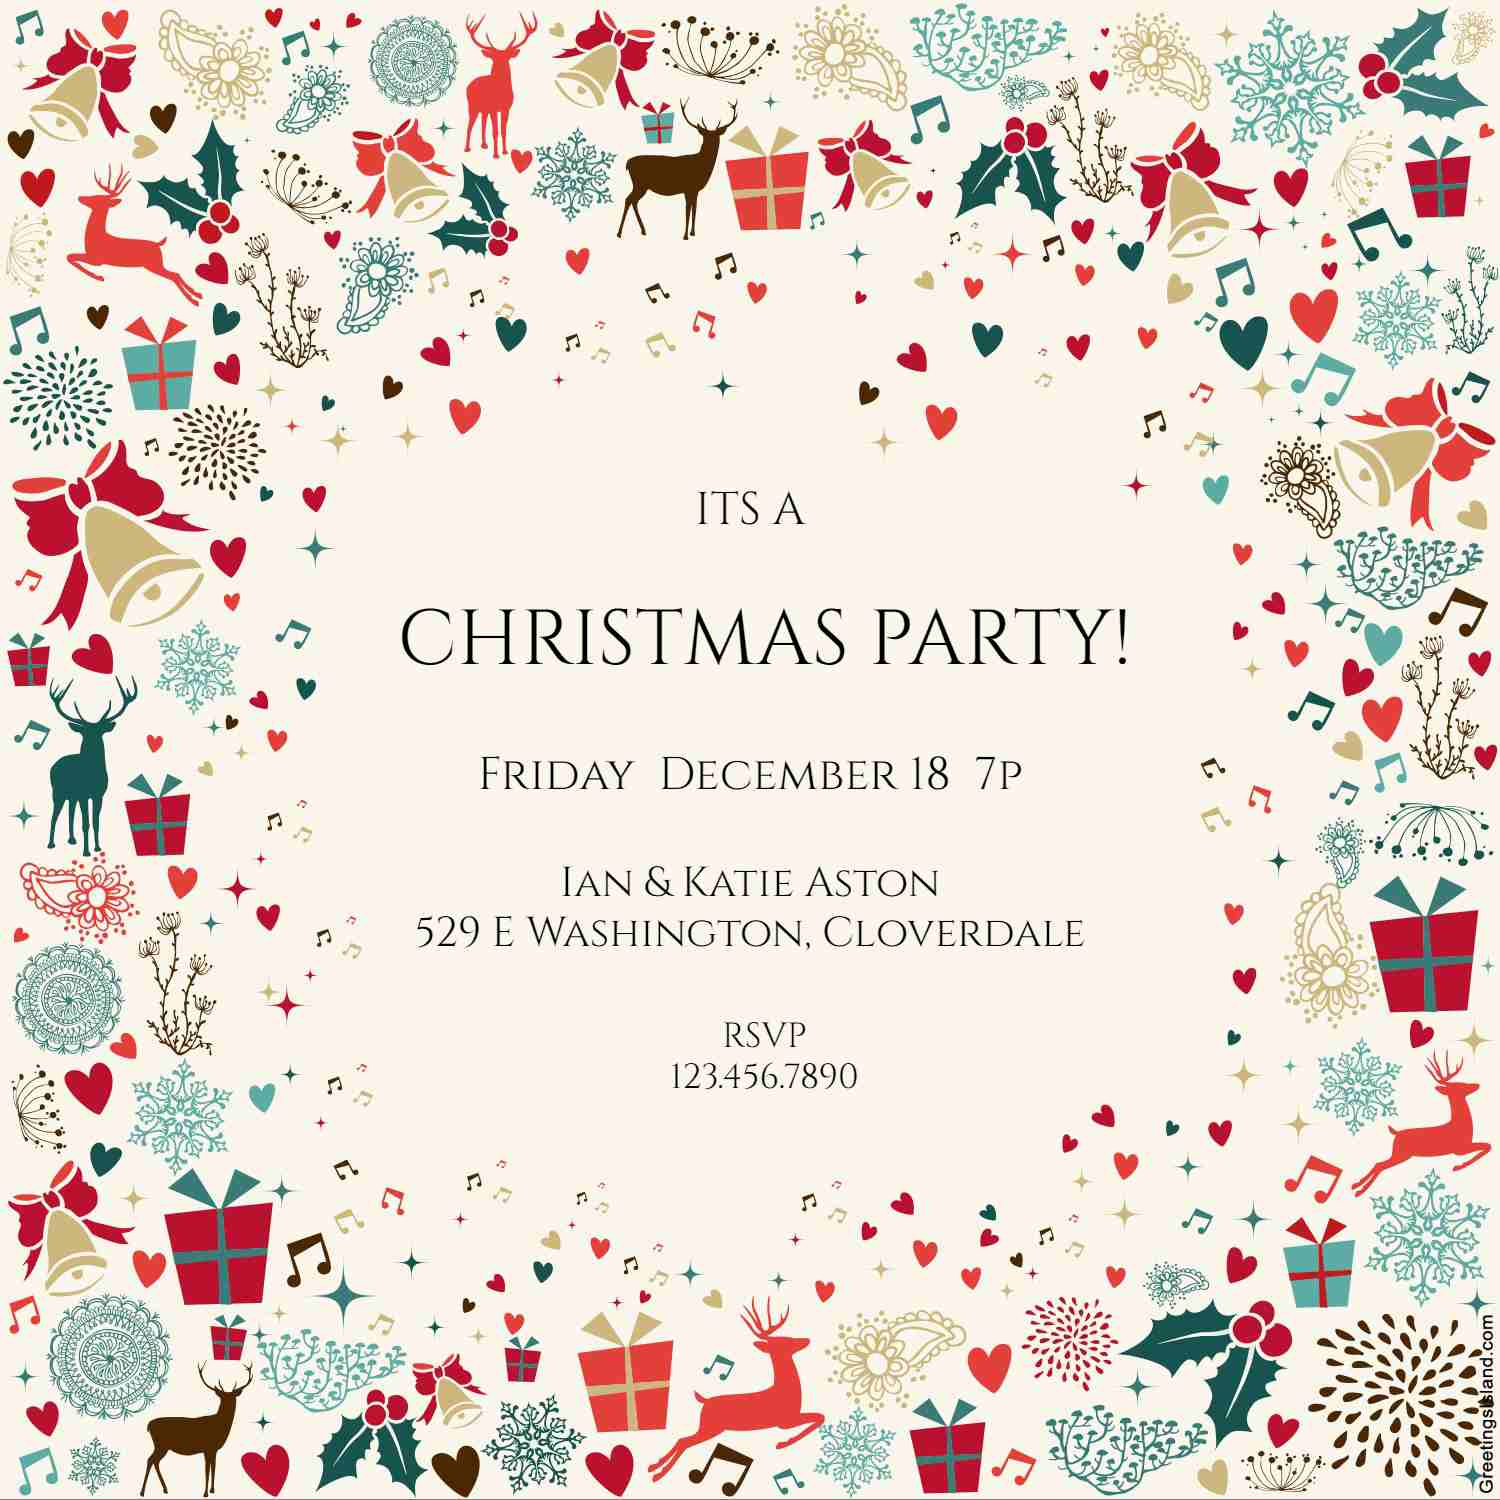 10 Free Christmas Party Invitations That You Can Print - Free Printable Christmas Party Signs